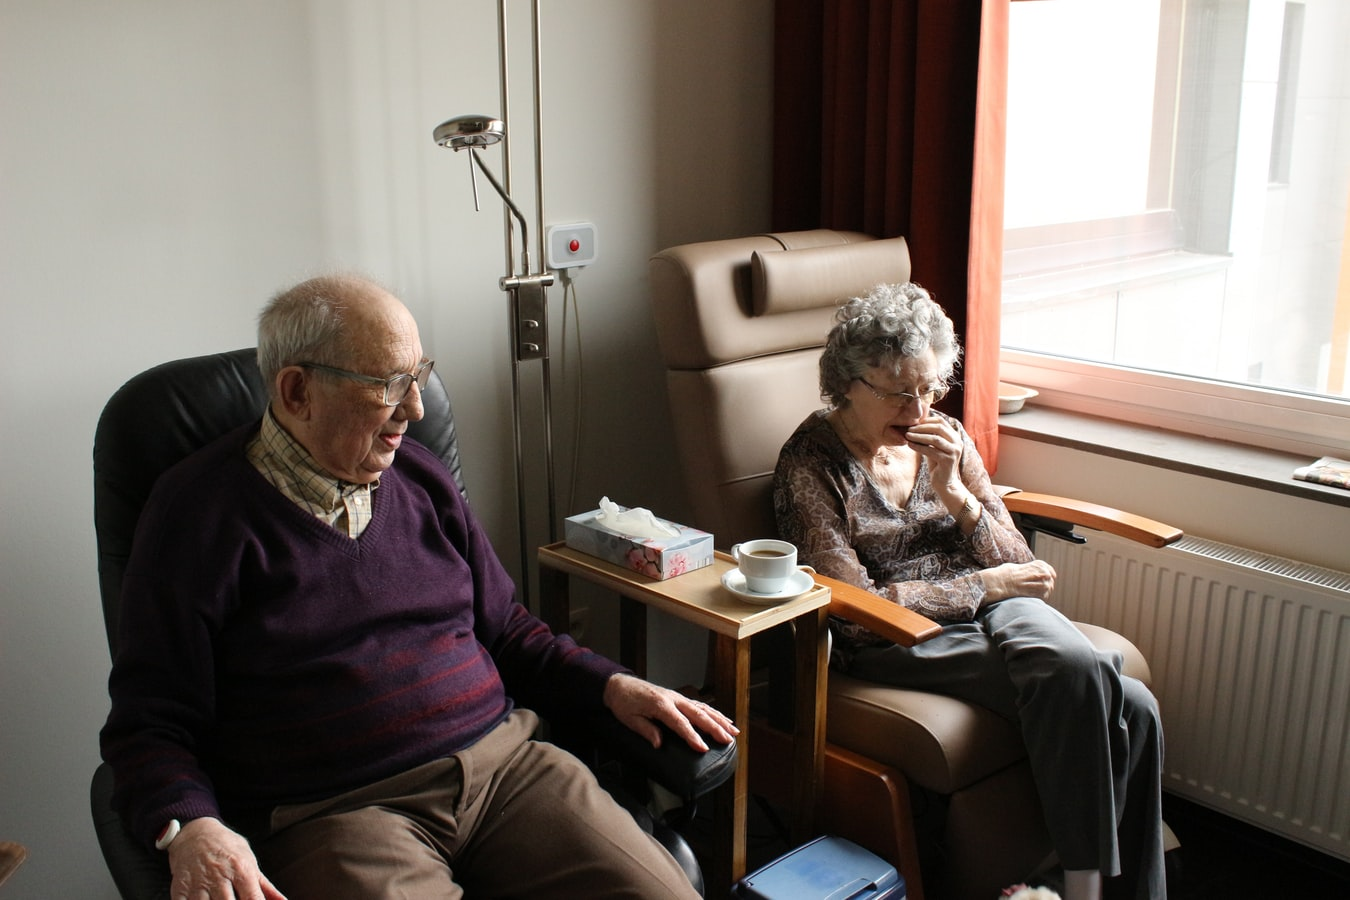 An older couple sitting together inside because she has pneumonia